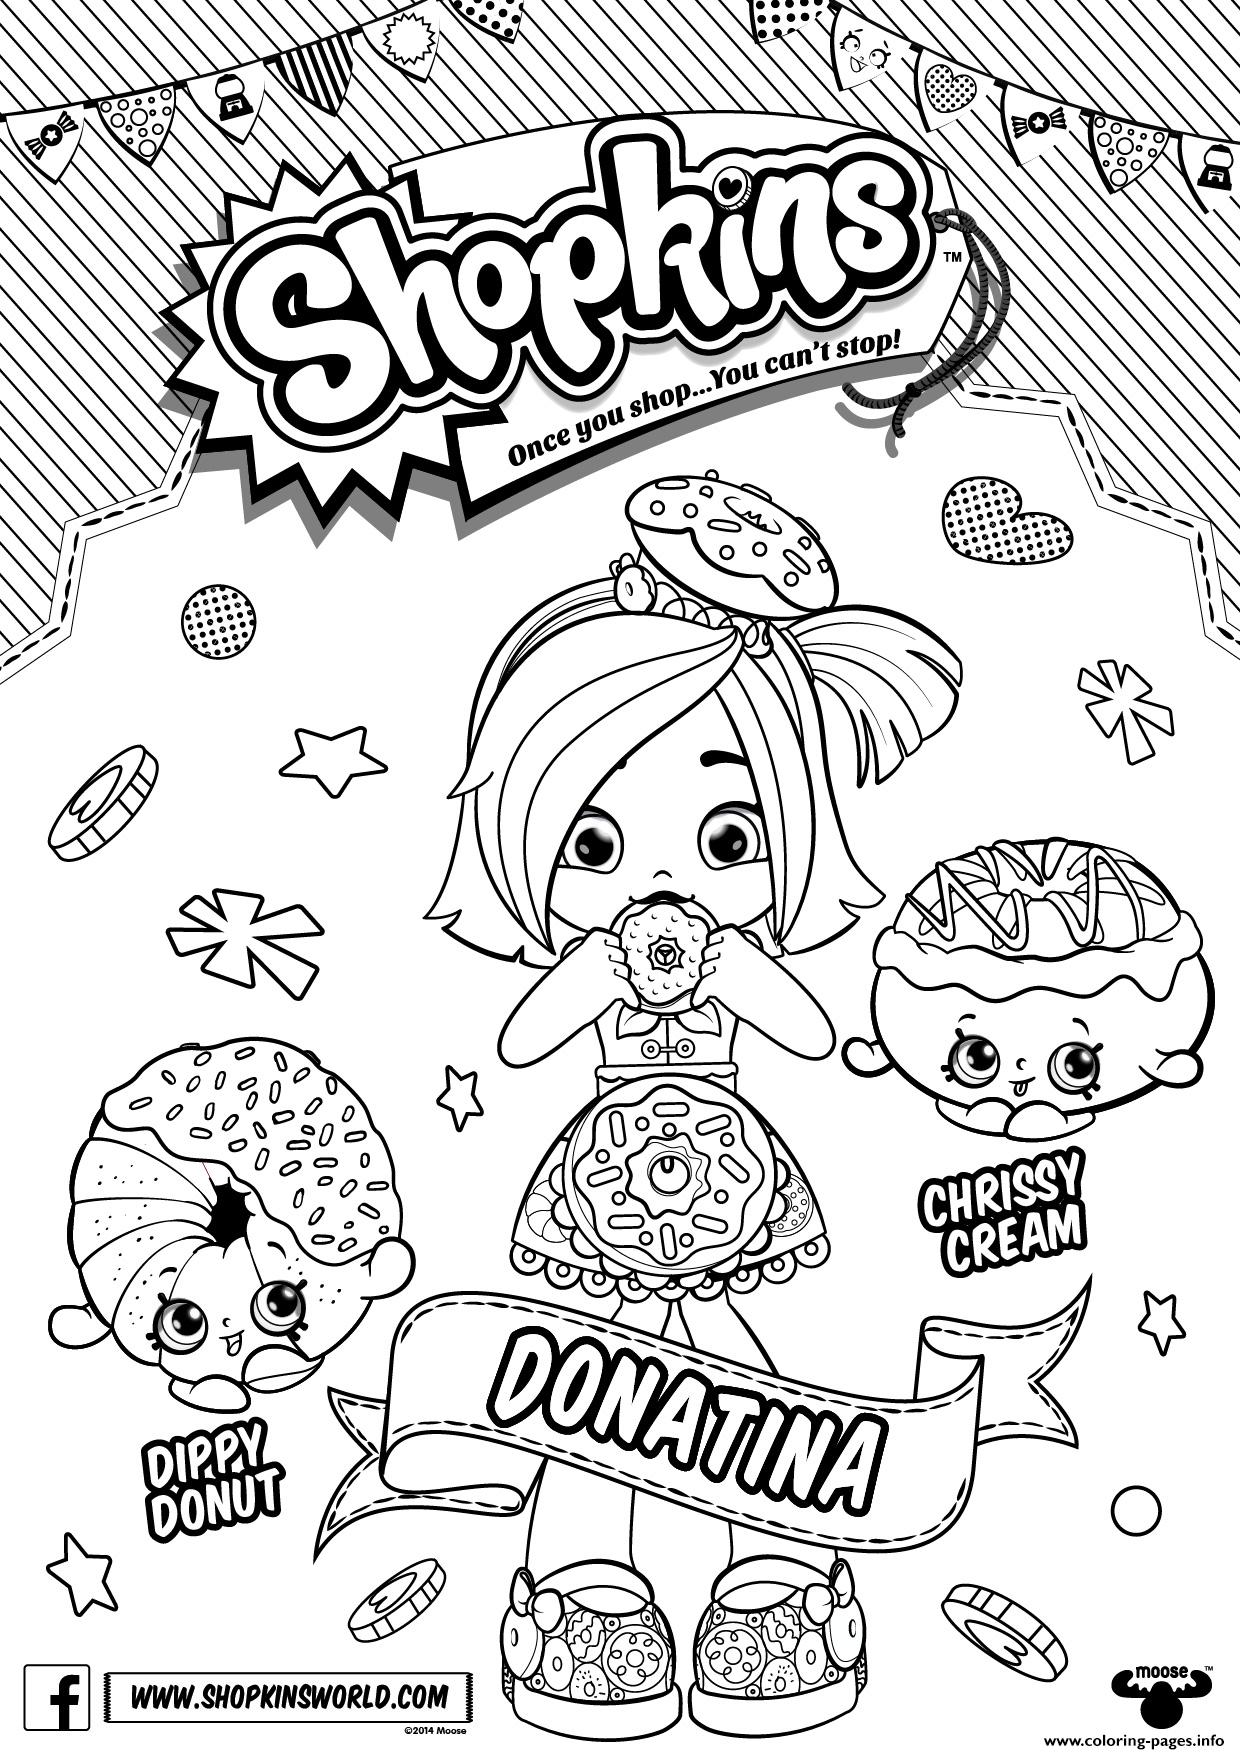 Donatina Shopkins Shoppies Coloring Pages Print Download